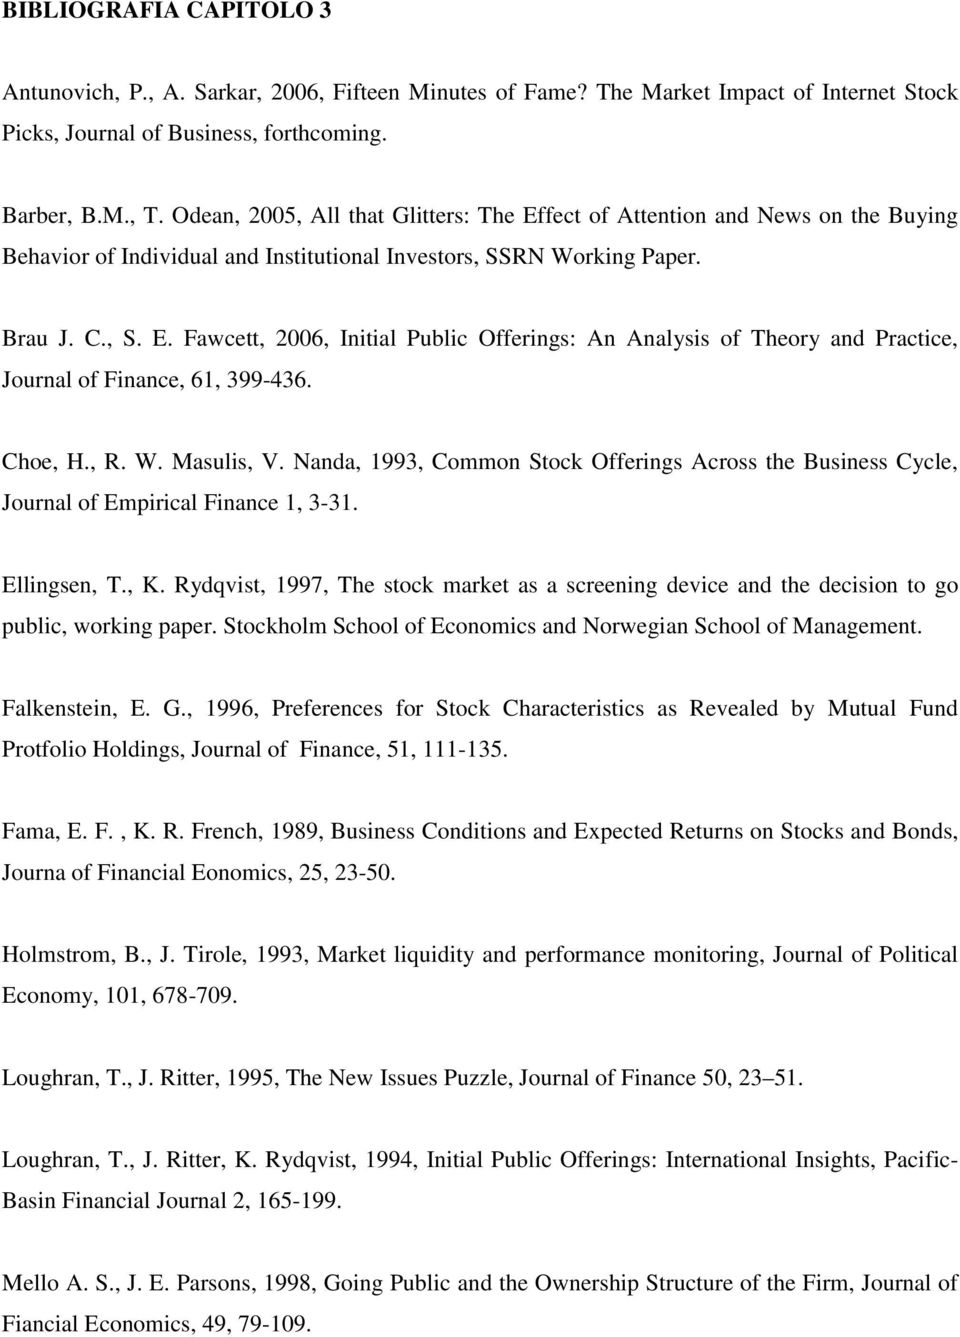 Choe, H., R. W. Masulis, V. Nanda, 1993, Common Stock Offerings Across the Business Cycle, Journal of Empirical Finance 1, 3-31. Ellingsen, T., K.